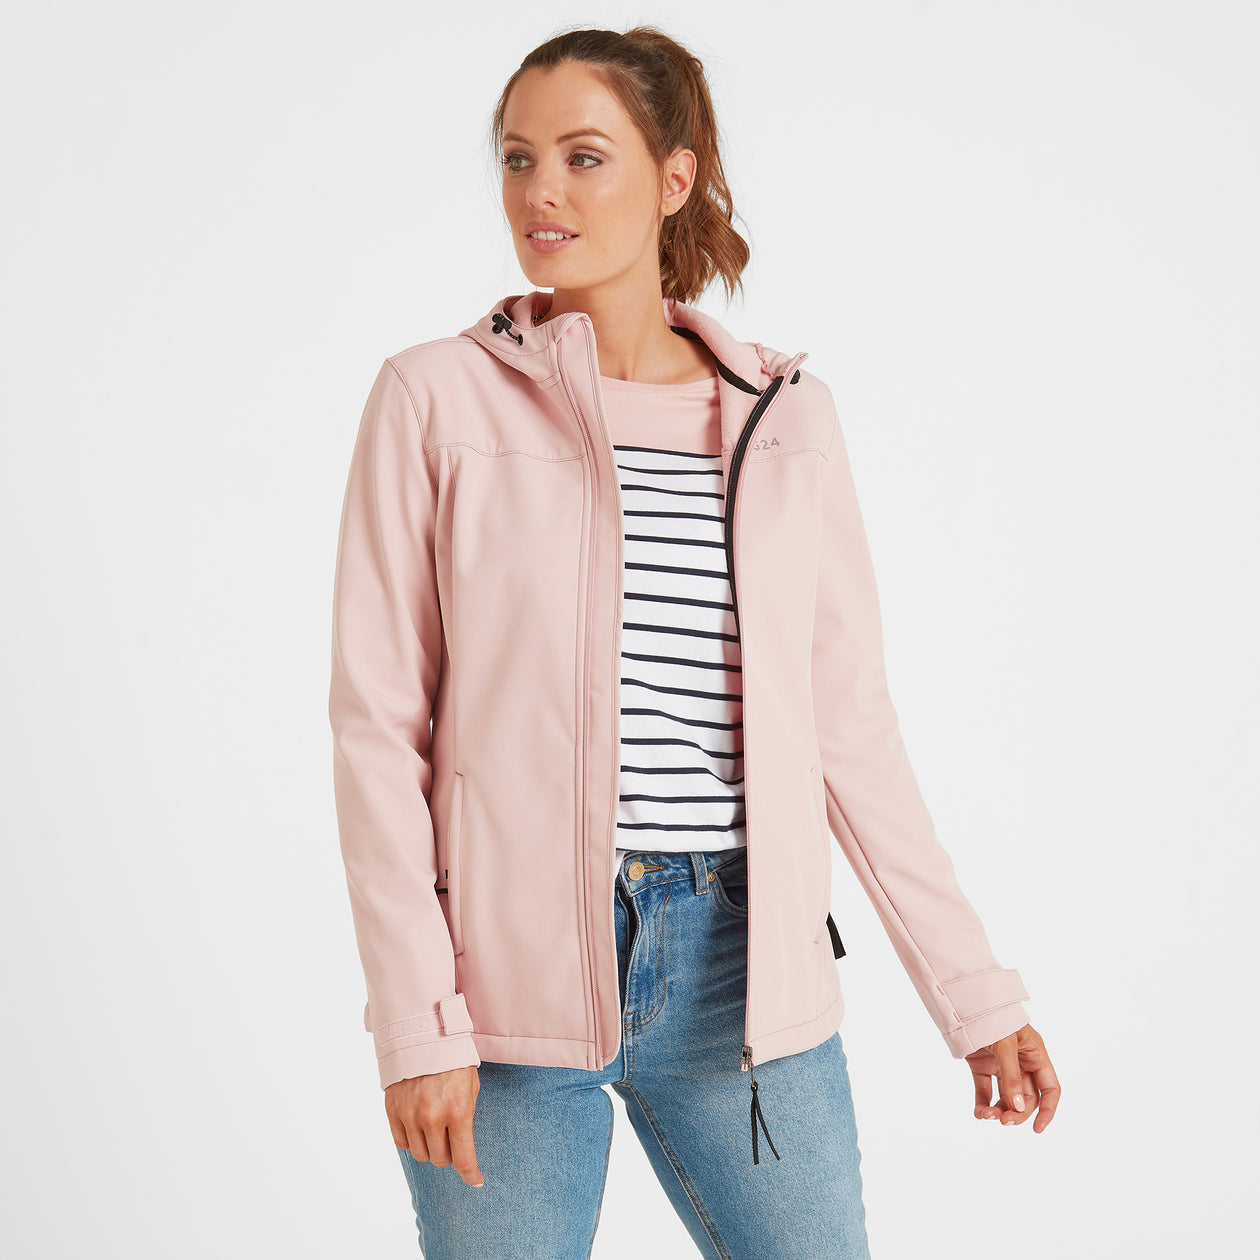 Keld Womens Softshell Hooded Jacket - Rose Pink image 4